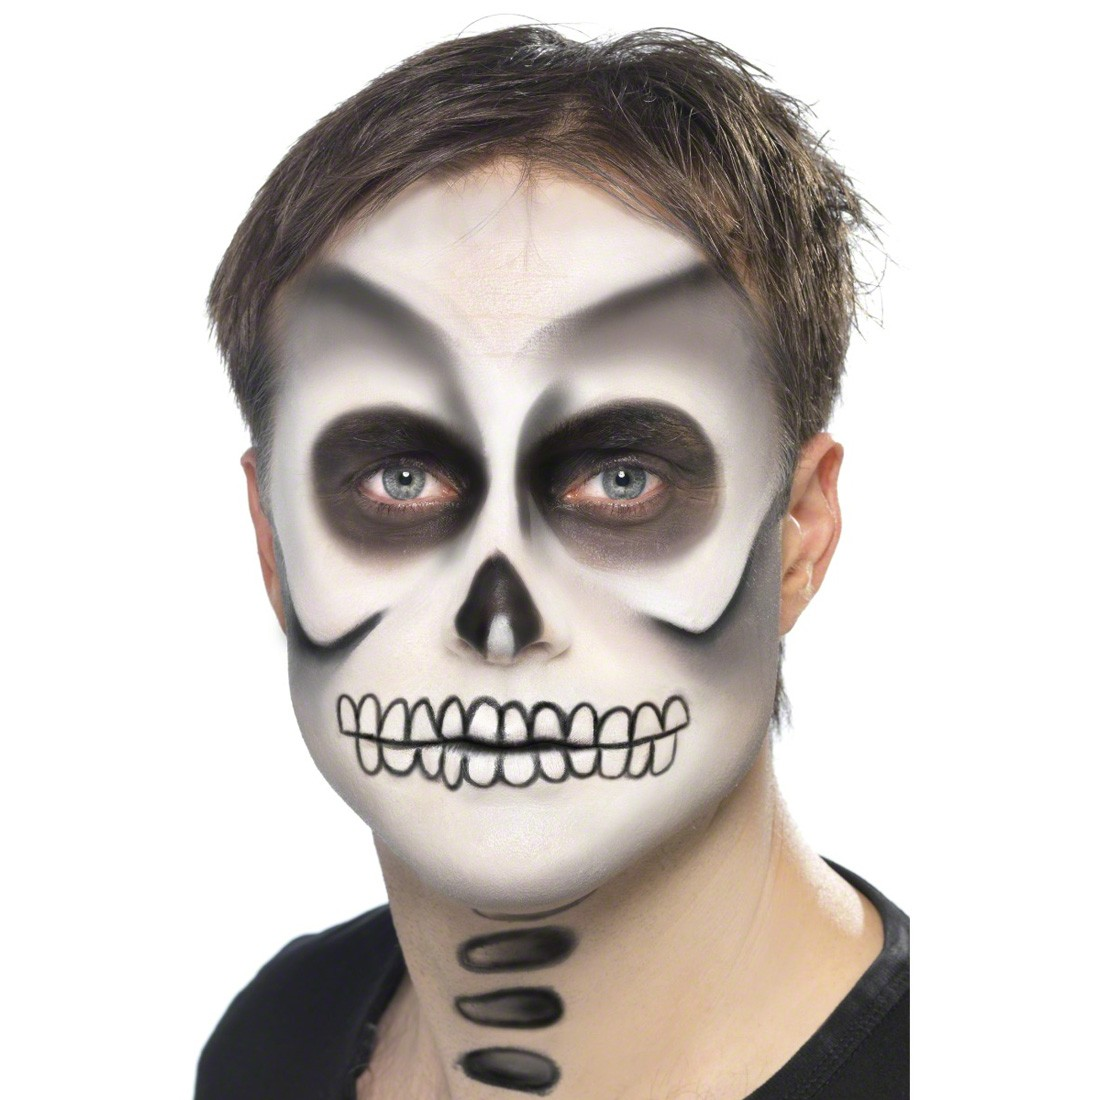 Painted Skeleton Faces For Halloween